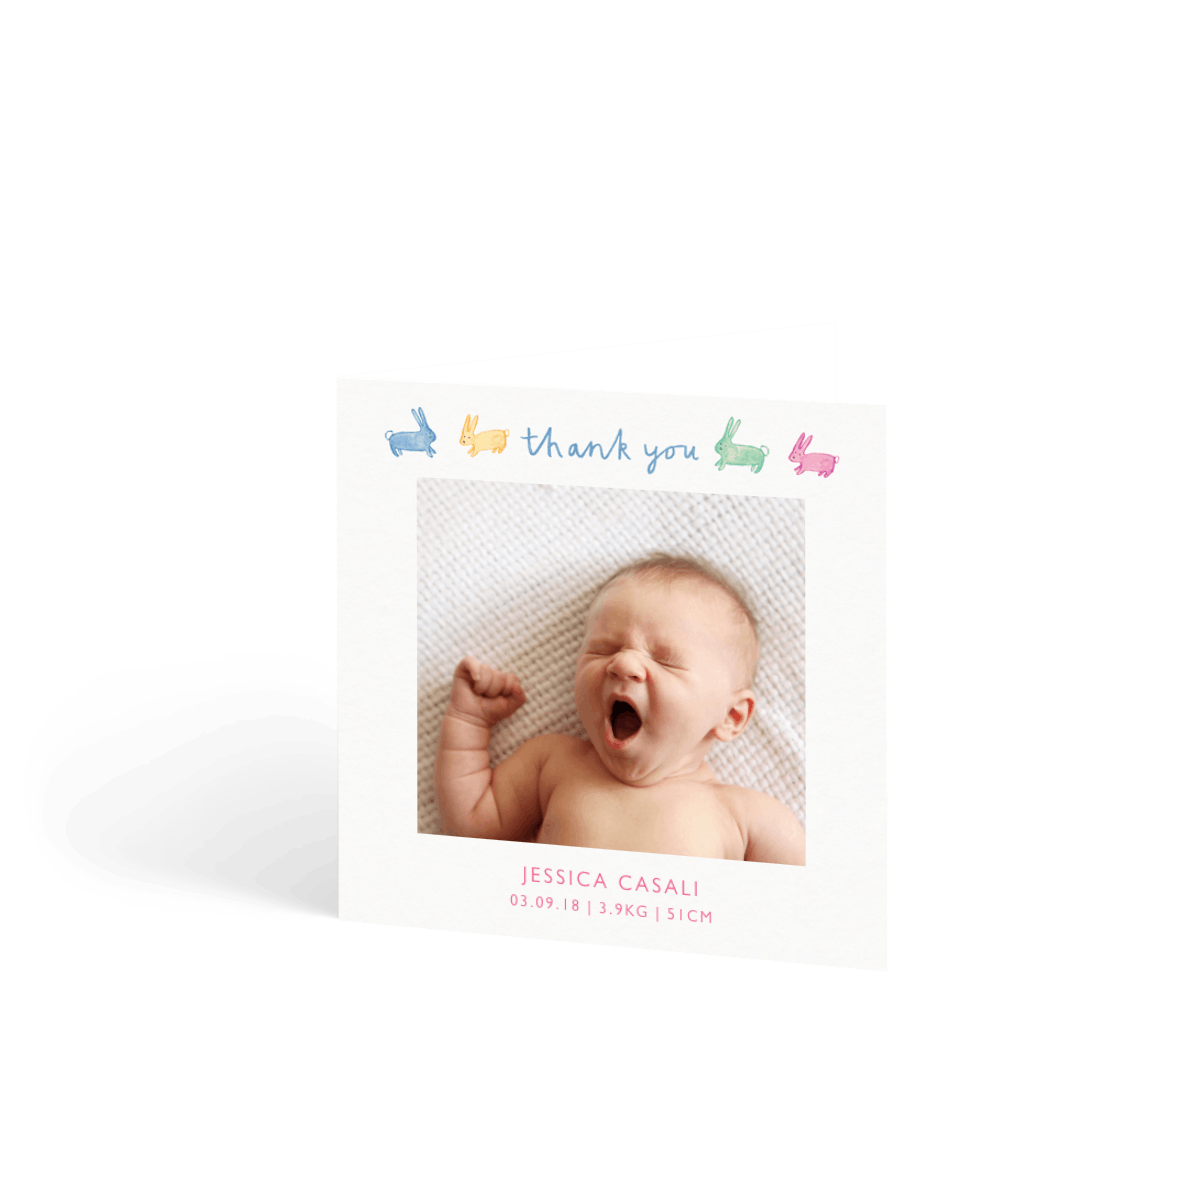 Https%3a%2f%2fwww.papier.com%2fproduct image%2f43903%2f16%2fthank you baby 5564 avant 1557488554.png?ixlib=rb 1.1